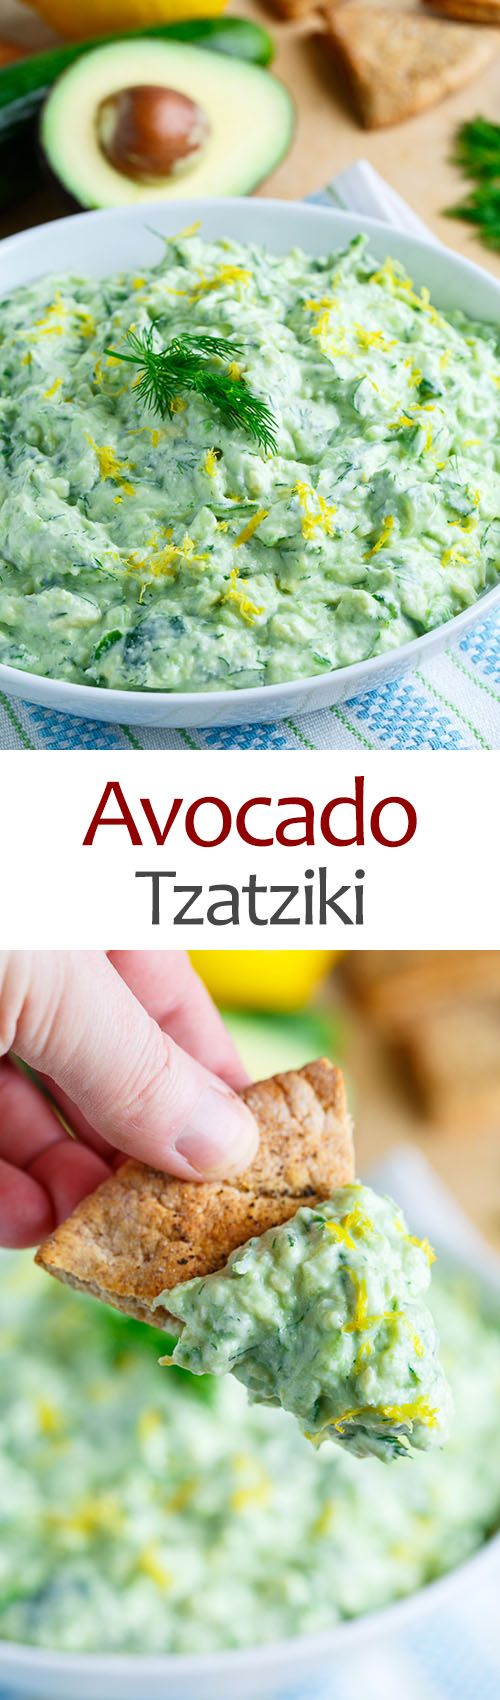 Avocado Tzatziki Sauce | Notey                                                                                                                                                                                 More